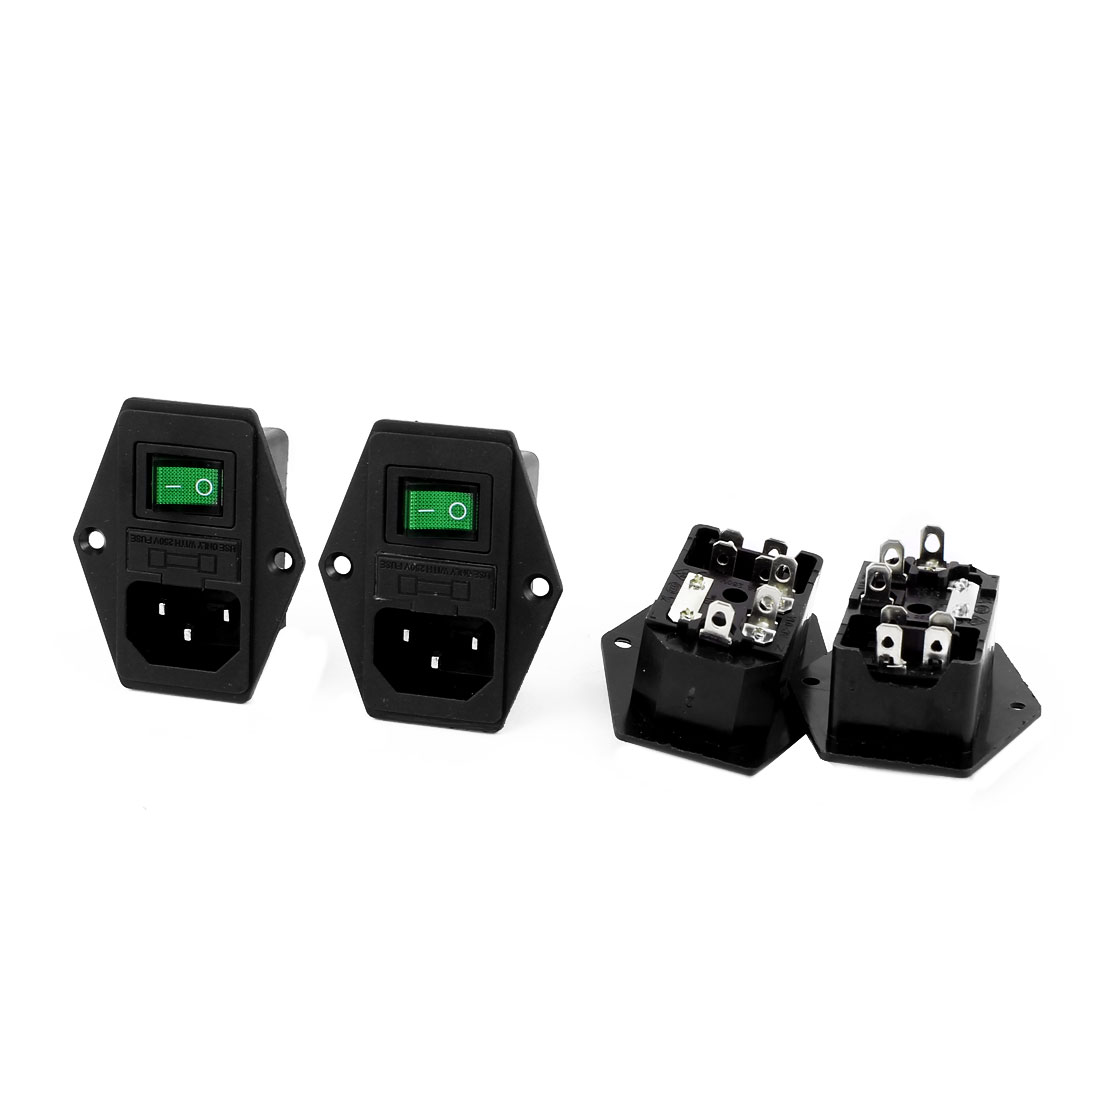 AC 250V 10A AC-01A Inlet Power Socket Green Light Solder Rocker Switch Fuse Holder 4Pcs